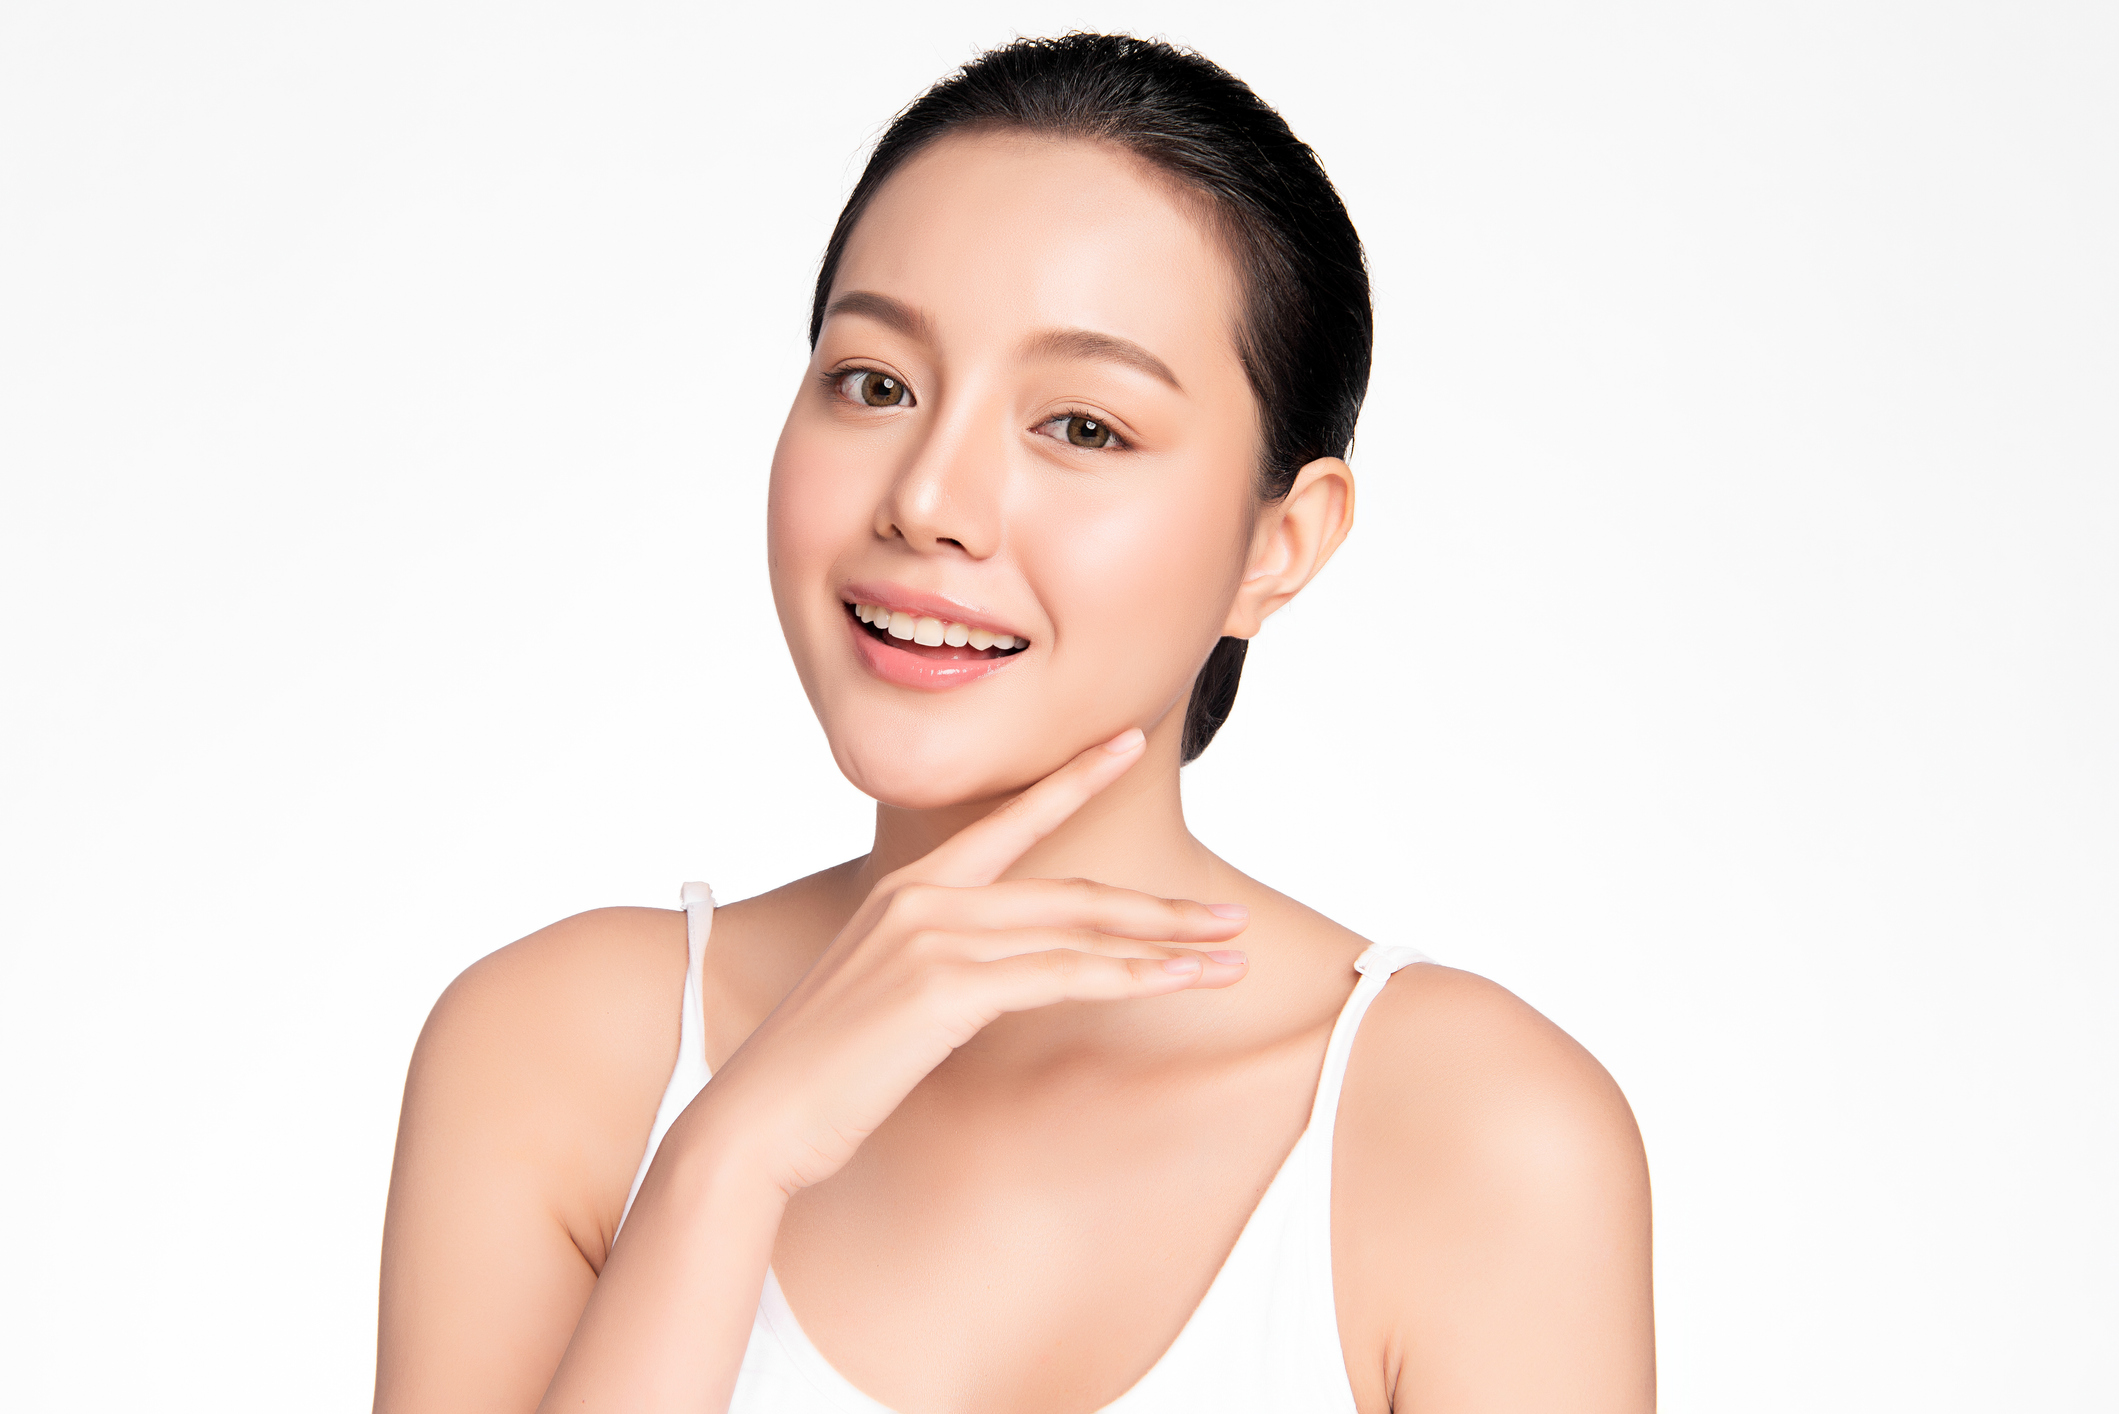 JUVA Skin & Laser Center Blog | What Are the Benefits of Microneedling?